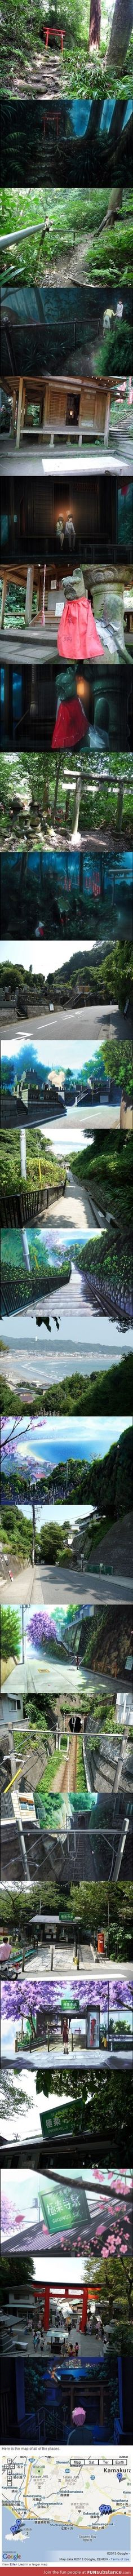 Elfen lied pilgrimage I NEED TO VISIT THIS PLACE